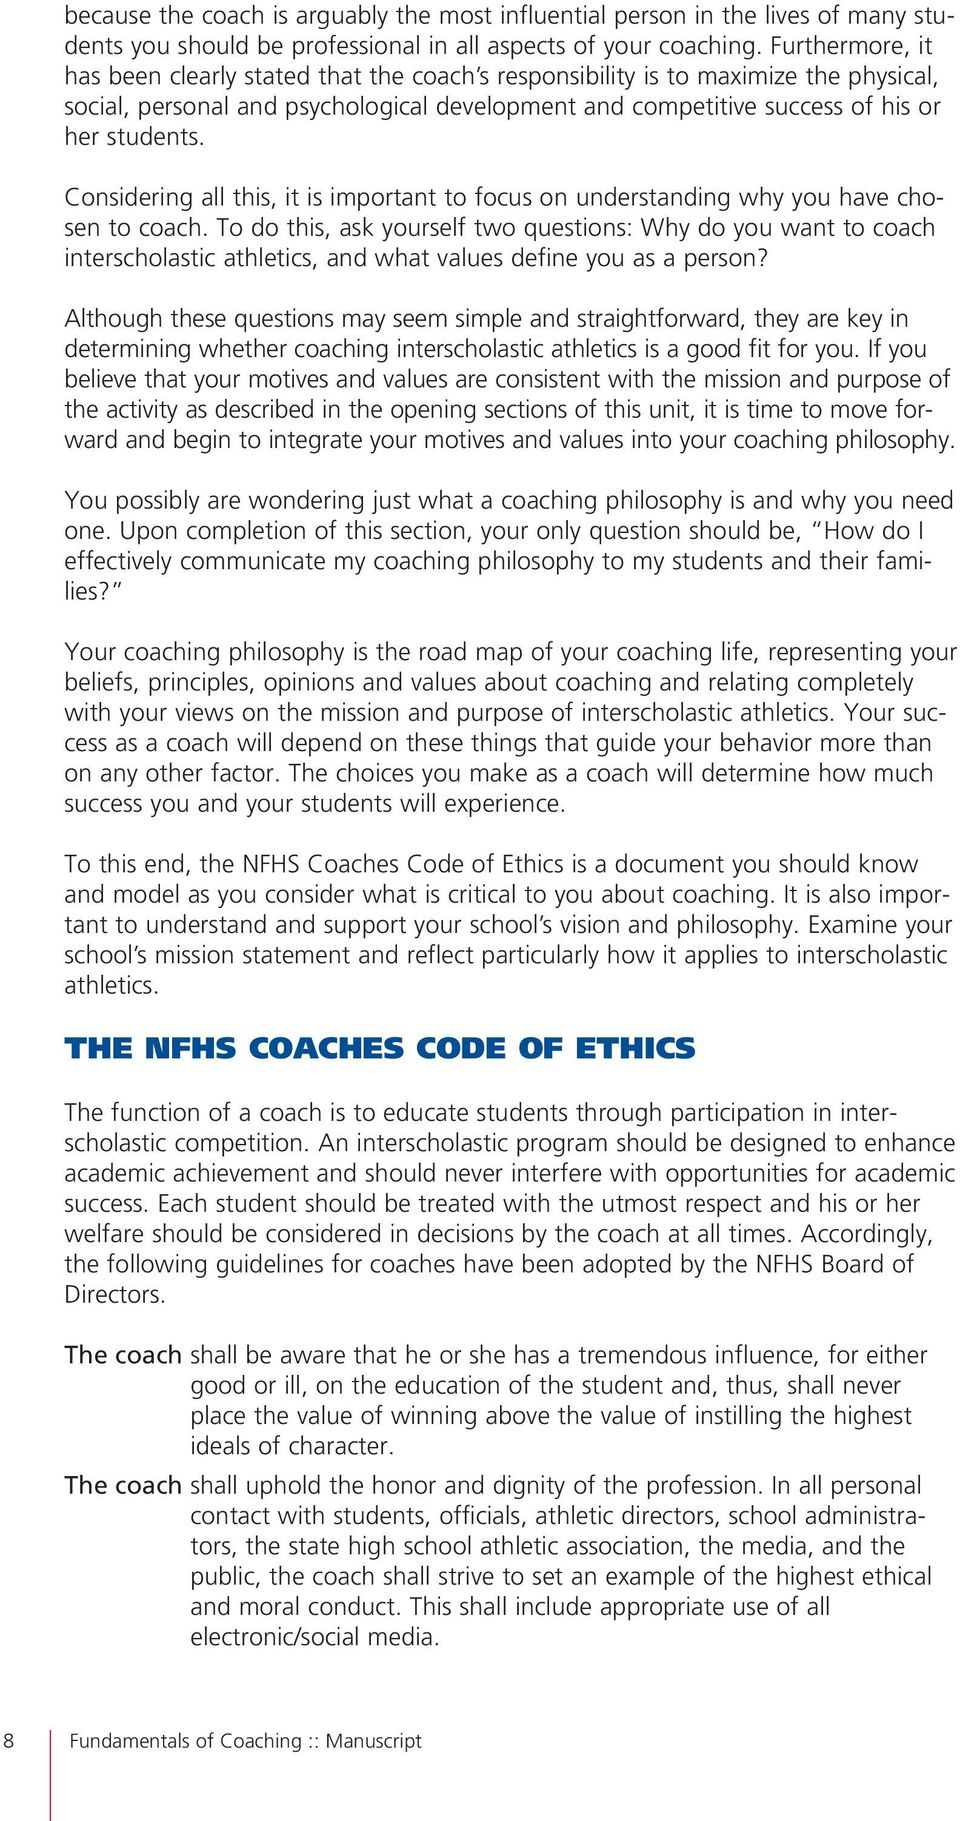 fundamentals of coaching pdf considering all this it is important to focus on understanding why you have chosen to